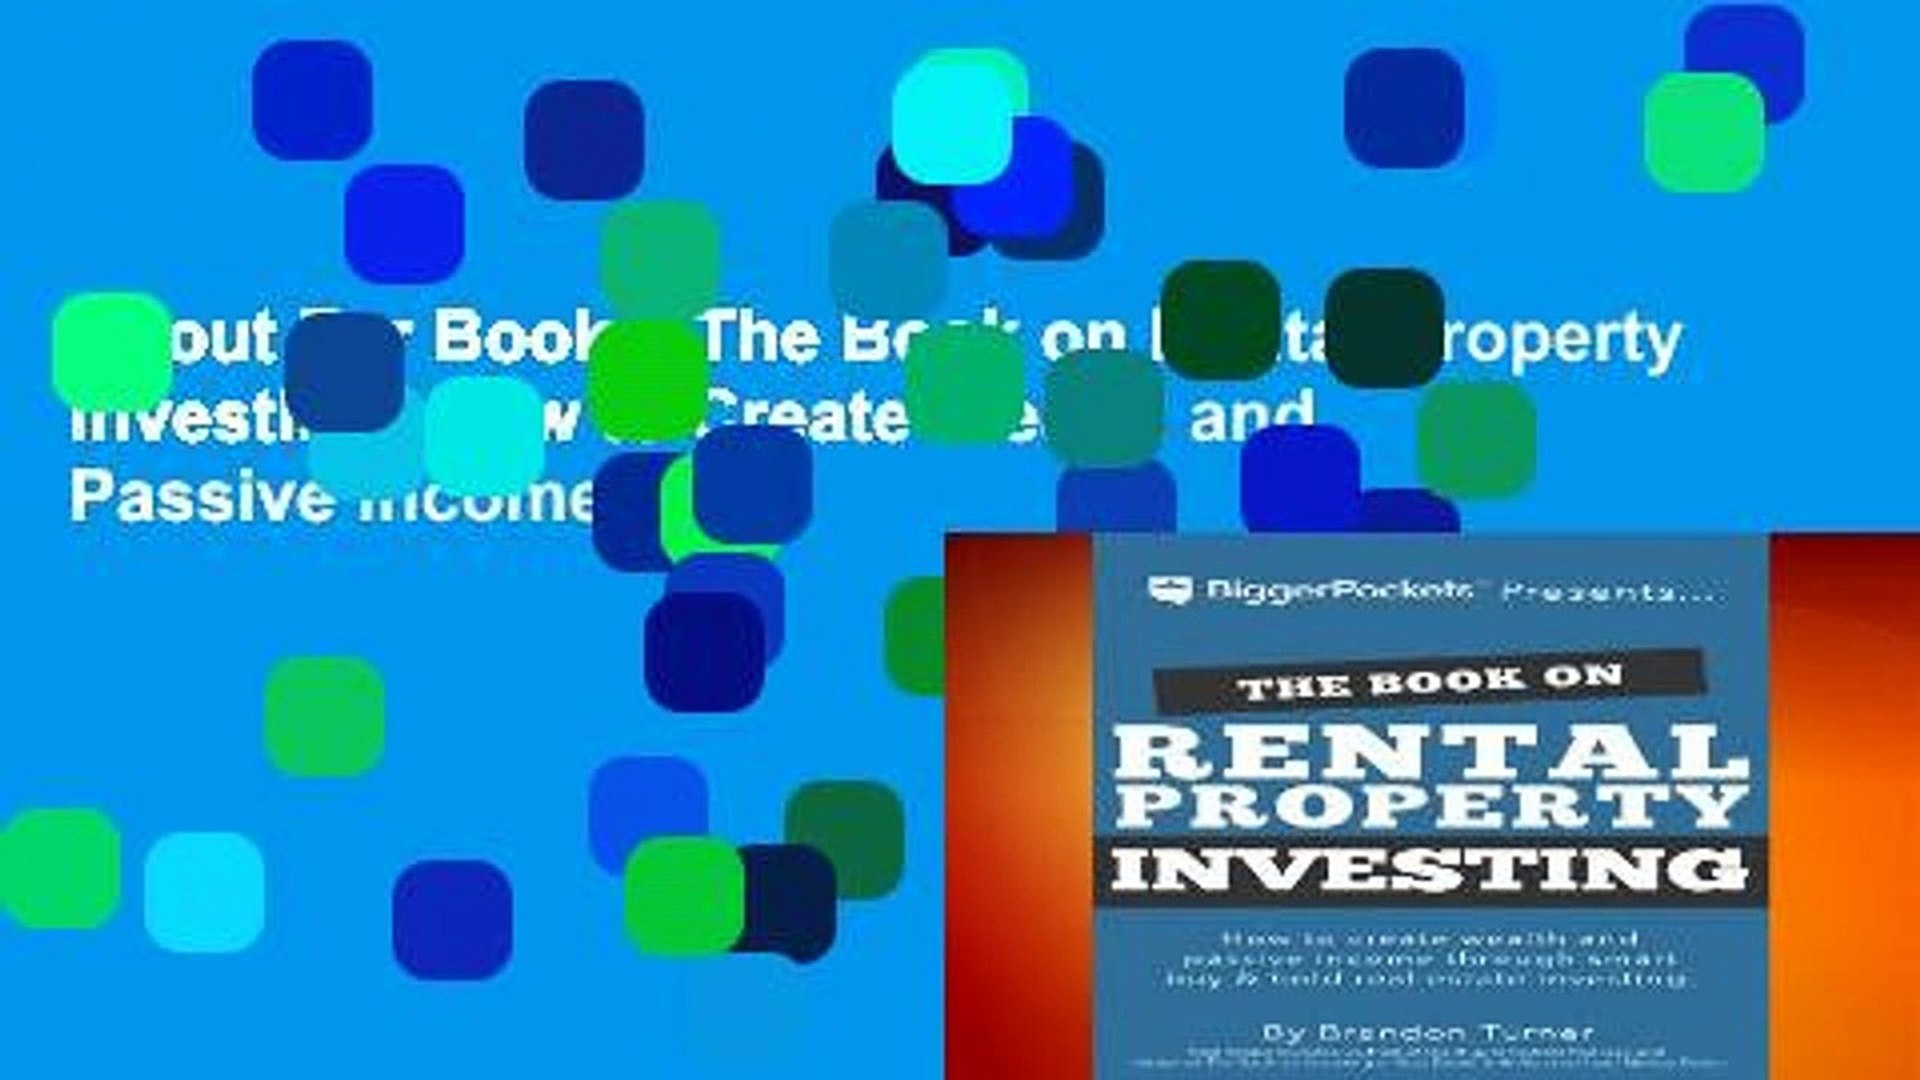 About For Books  The Book on Rental Property Investing: How to Create Wealth and Passive Income